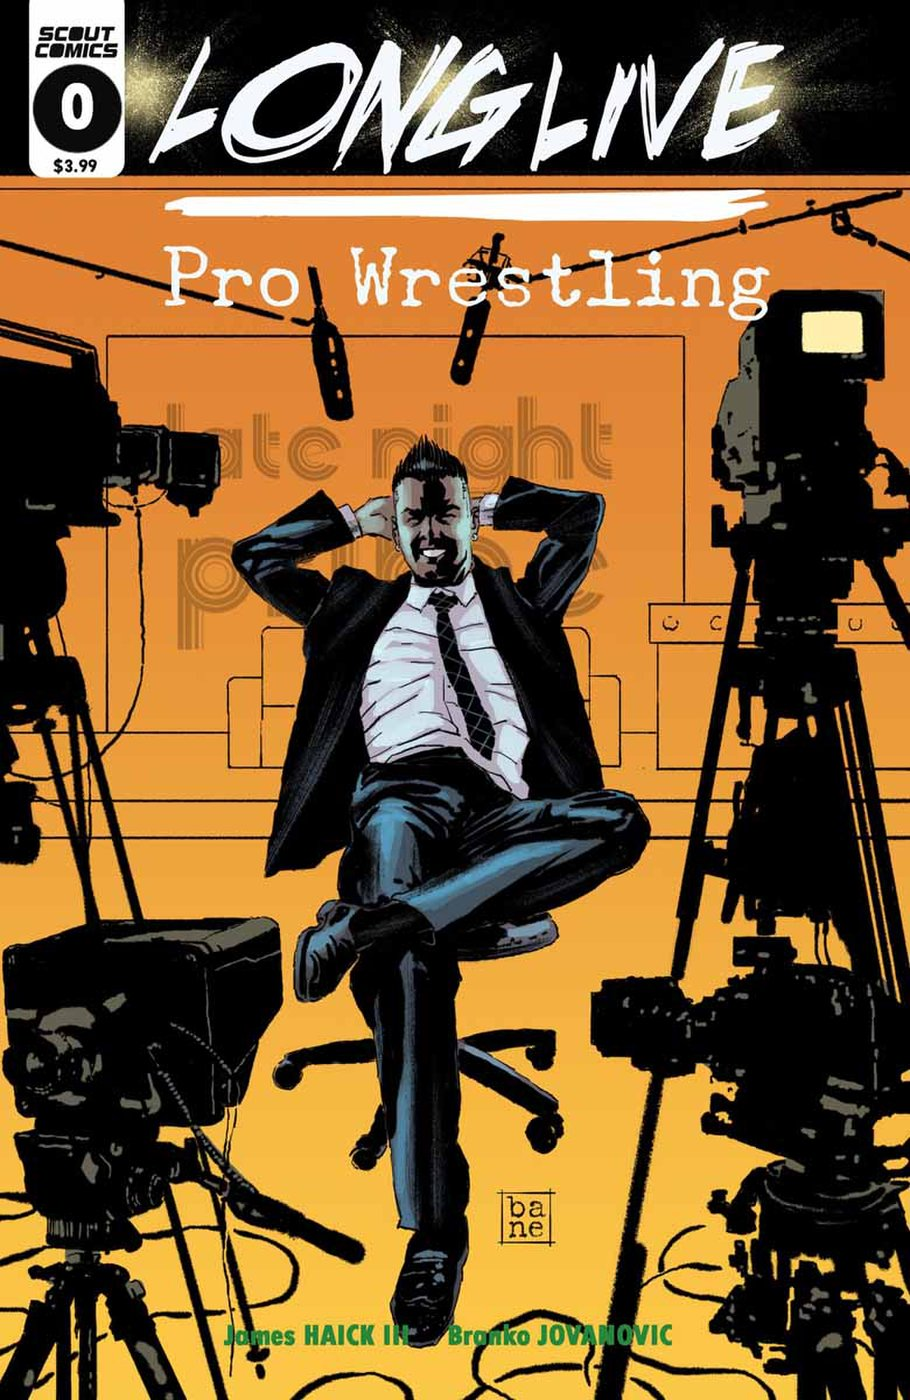 LONG LIVE PRO WRESTLING #0. Written by James Haick III and Illustrated by  Branko Jovanovic Full Color, 32pages, $3.99. UPC: 85999000257600011